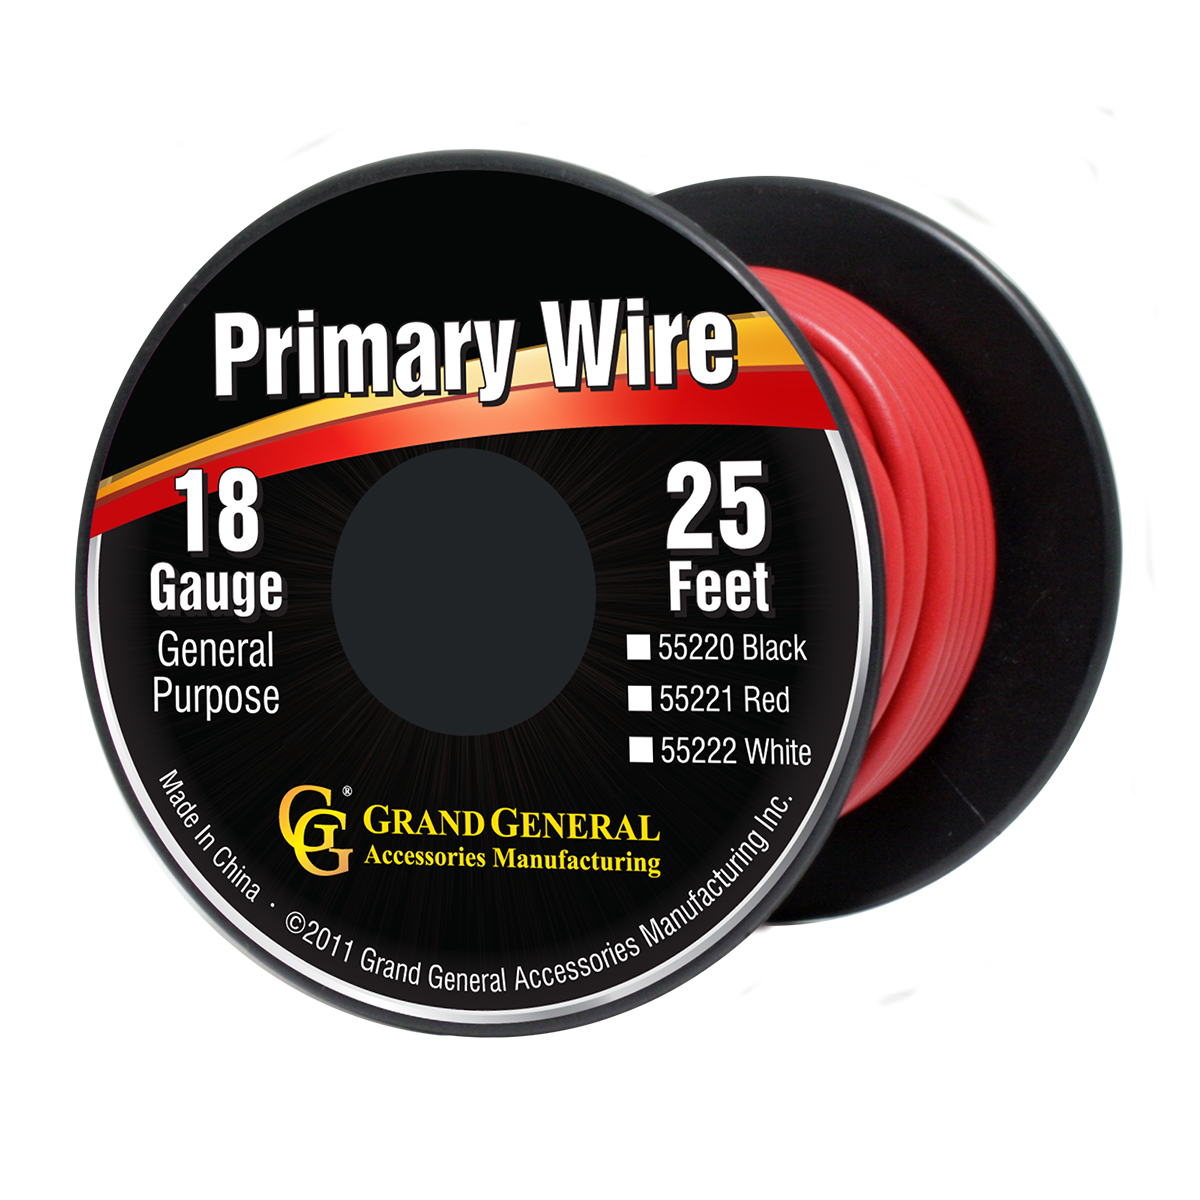 55221/55221SP Primary Wire in 18 Gauge, 25 Feet